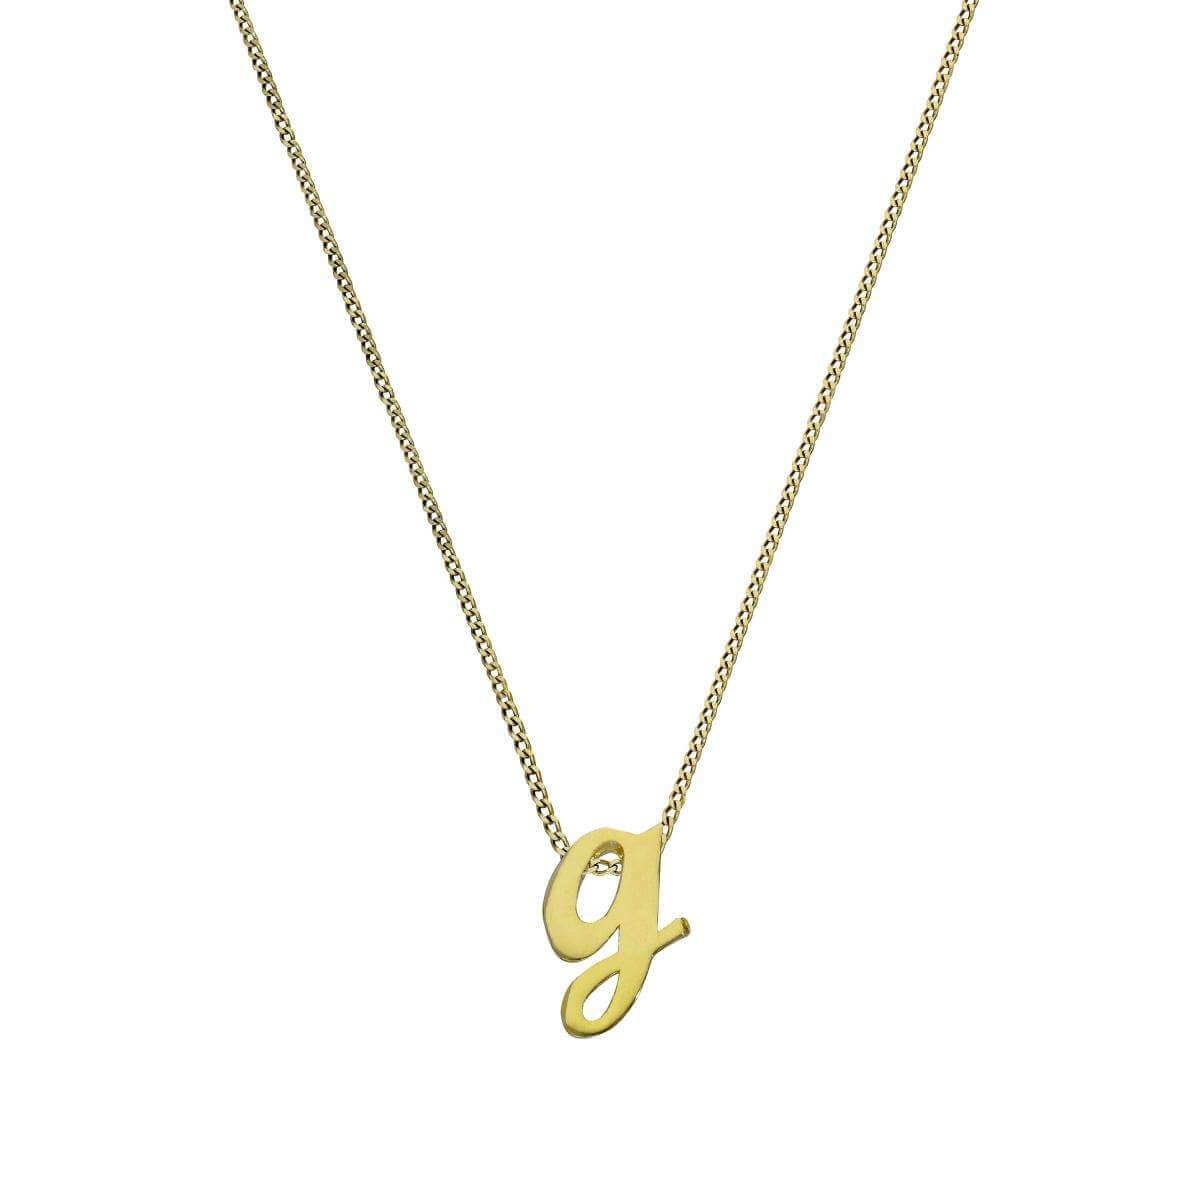 Tiny 9ct Gold Alphabet Letter G Pendant Necklace 16 - 20 Inches